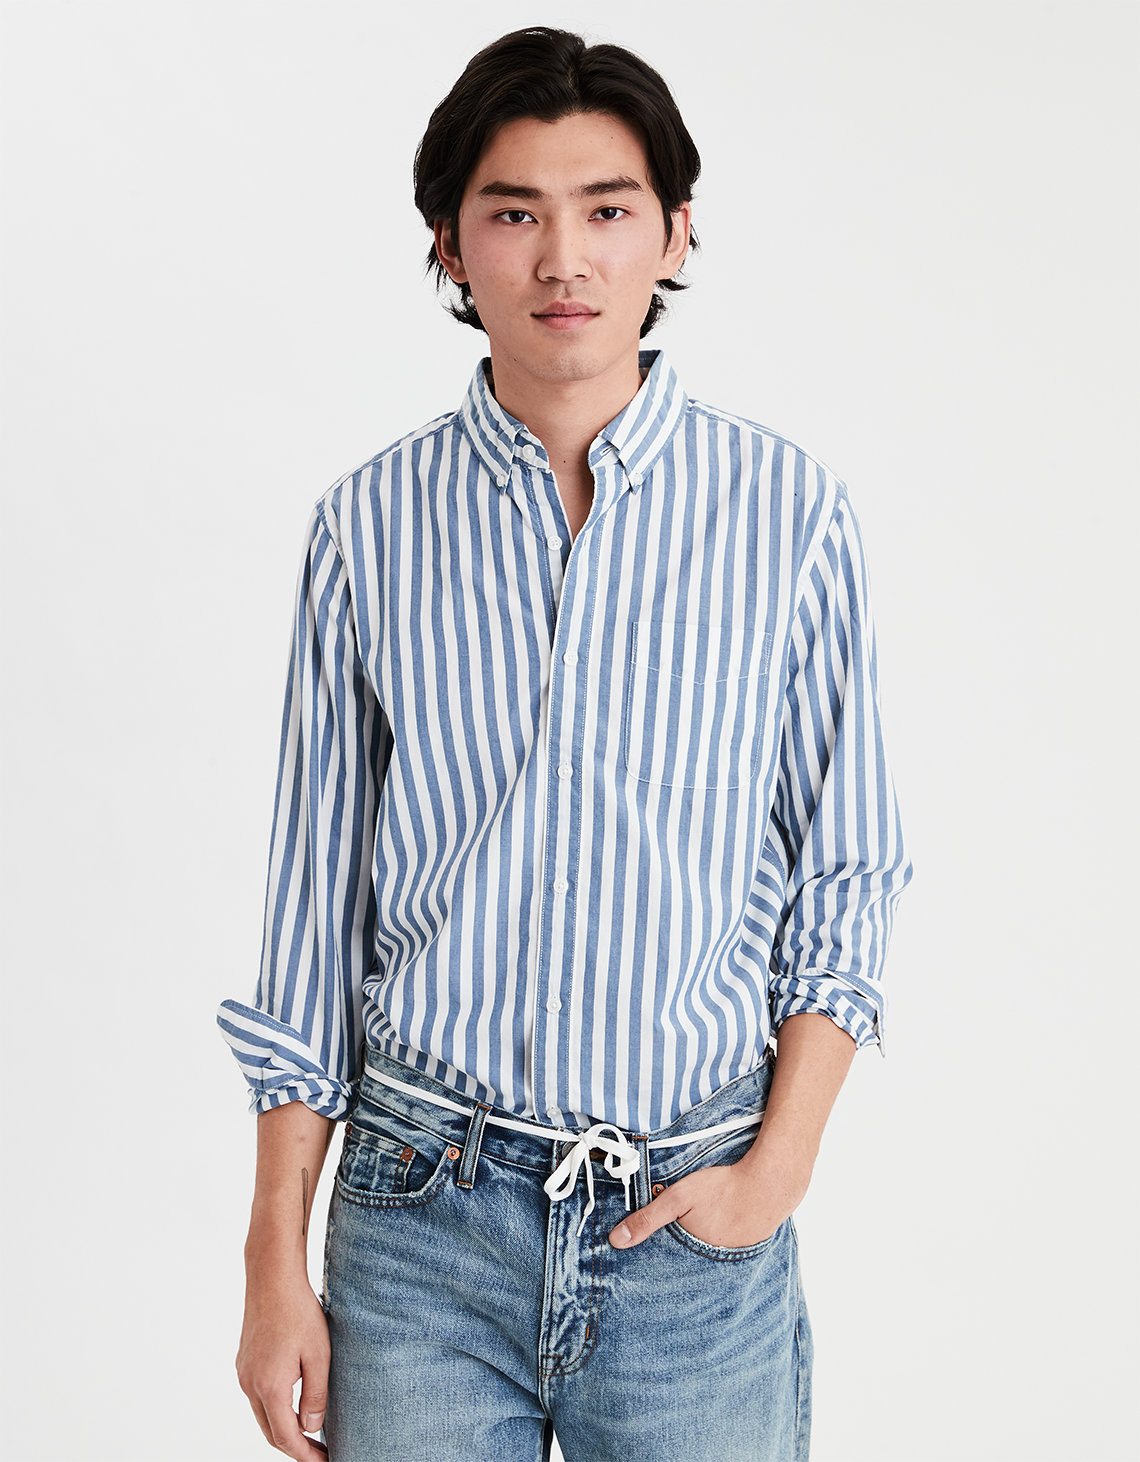 584ff038de895 AE Long Sleeve Button Down Shirt. Placeholder image. Product Image